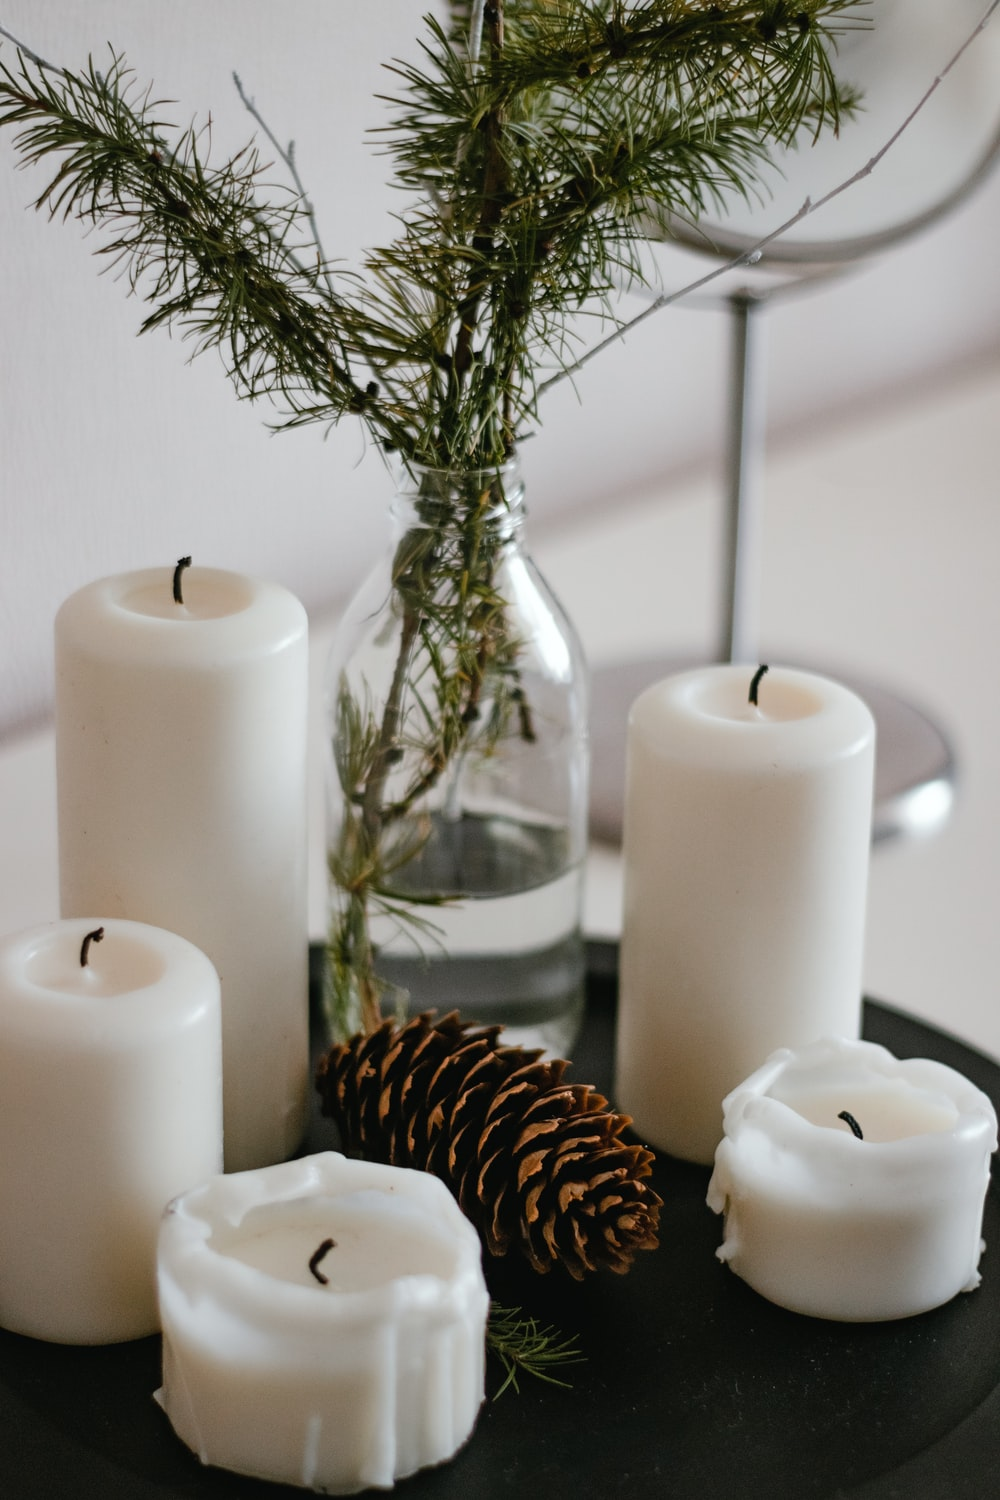 white pillar candles on clear glass candle holder